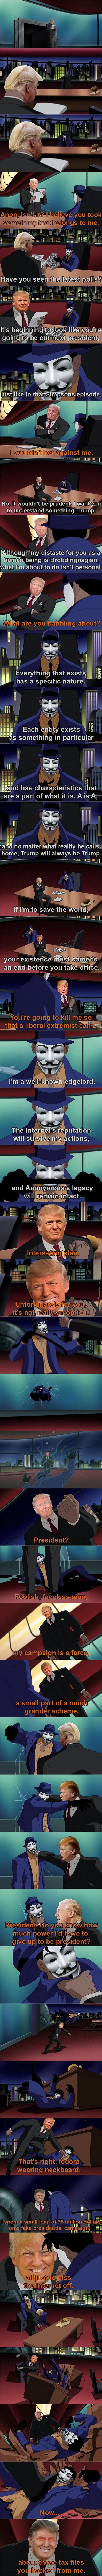 The Truth Behind Trumps Campaign